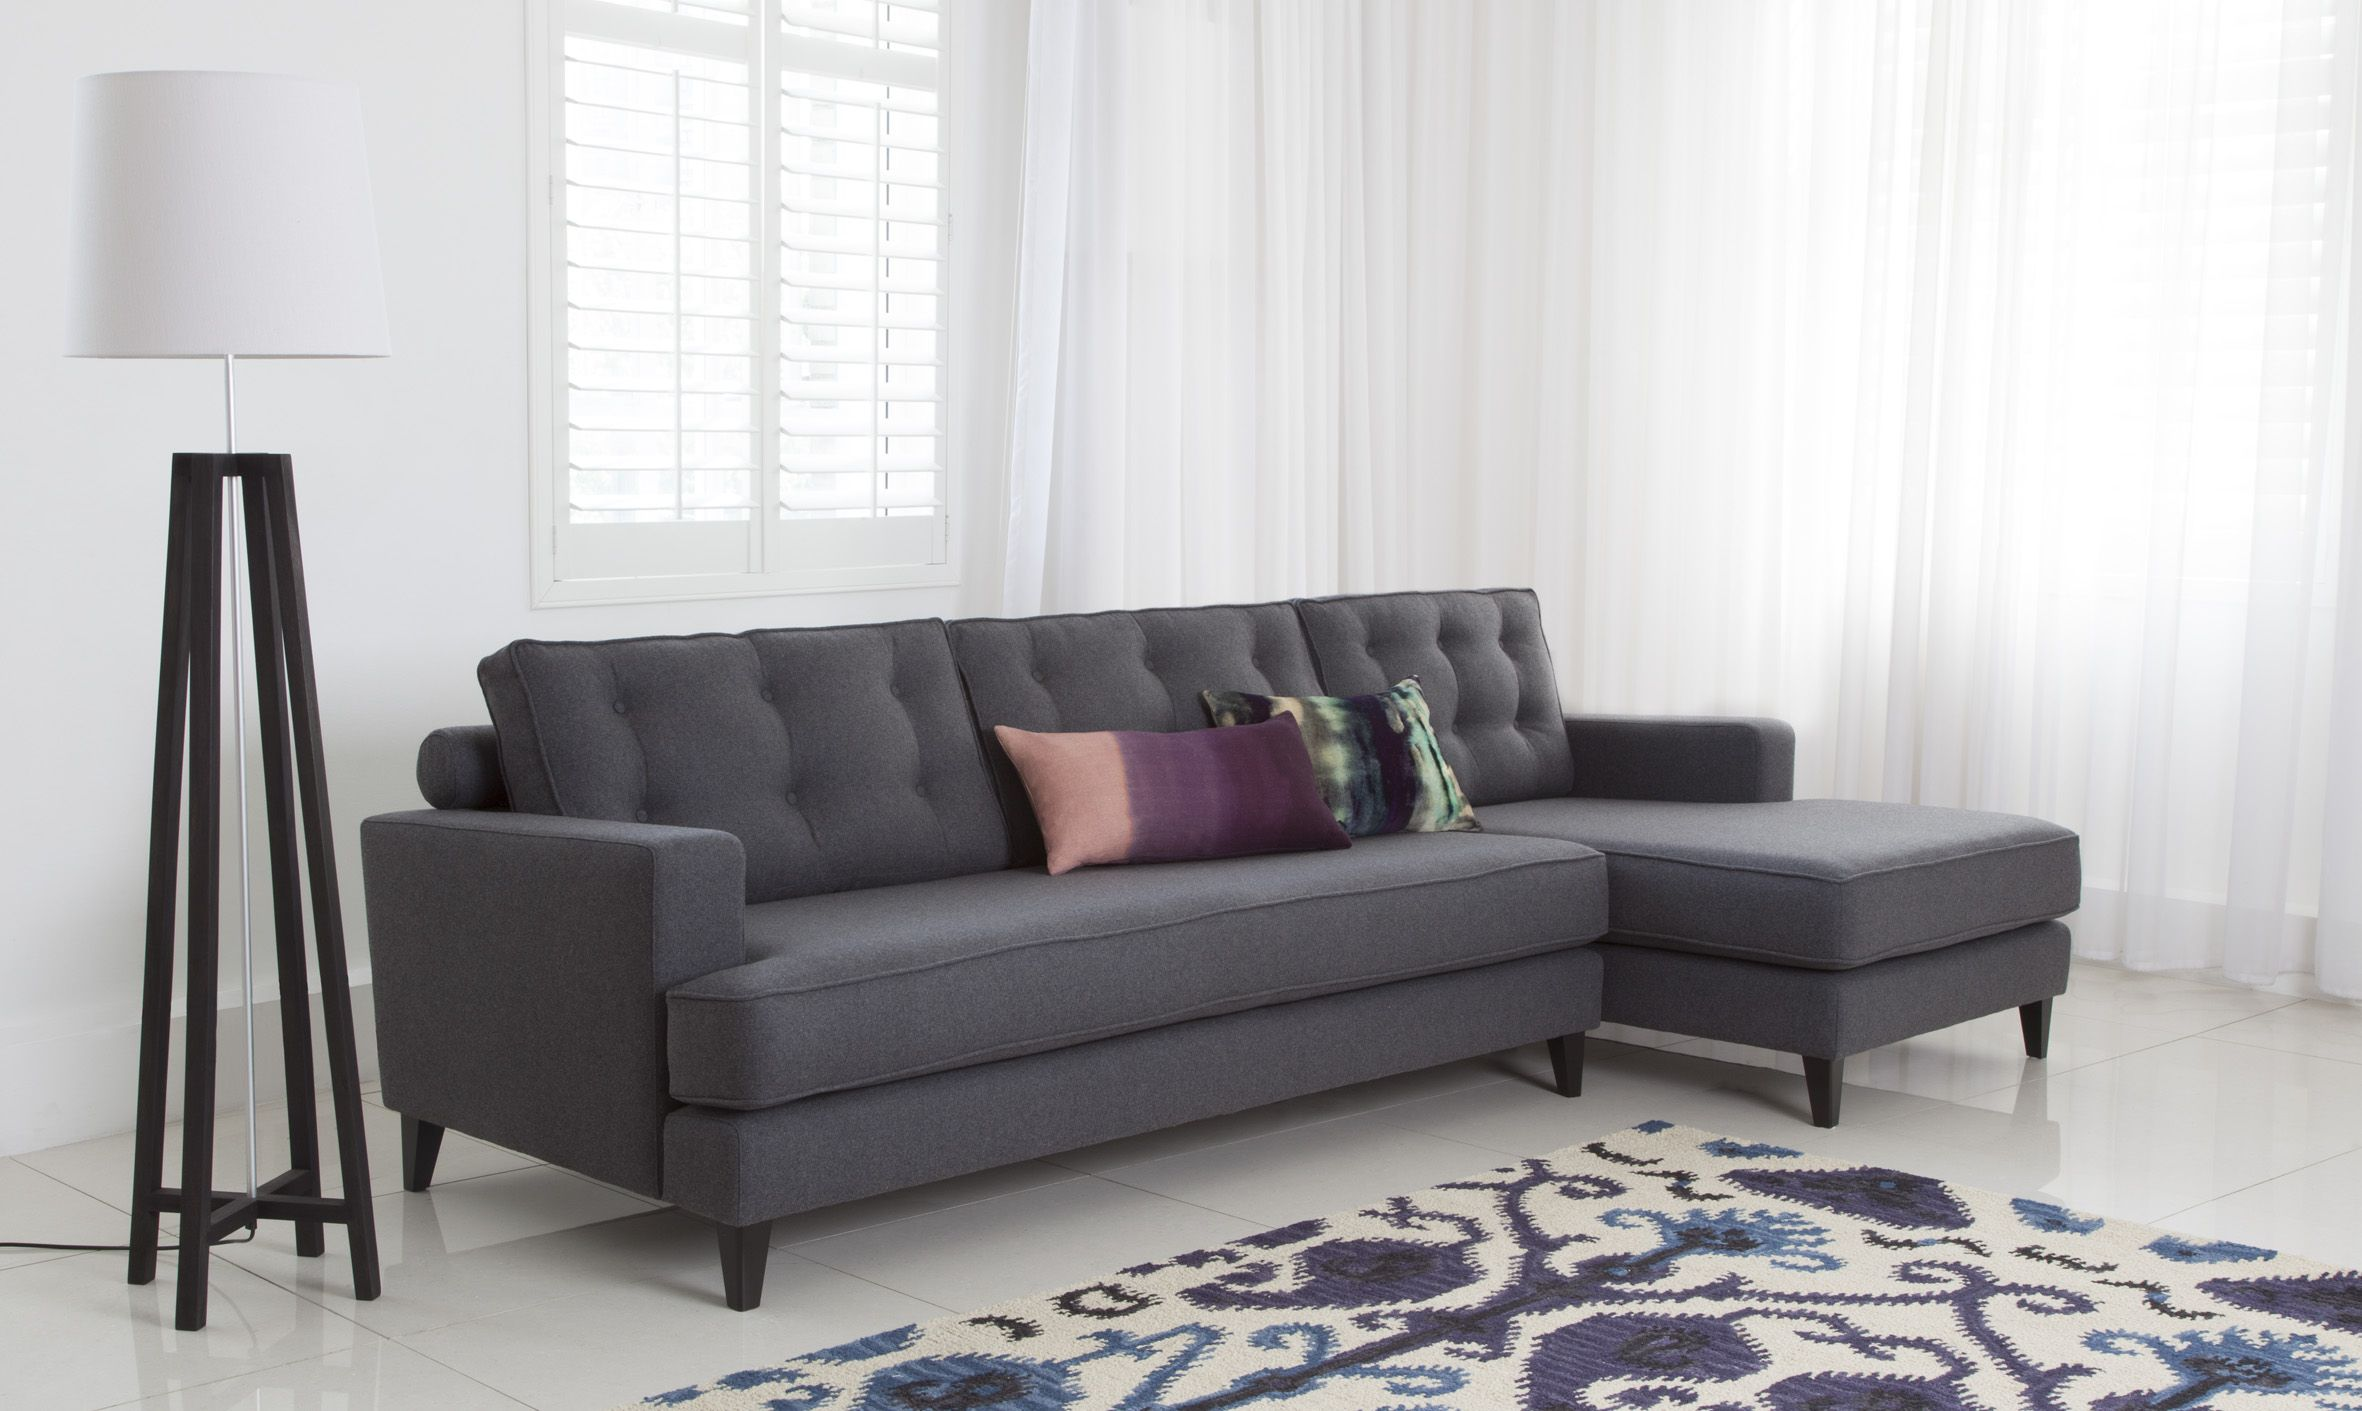 The Mistral sofa by Roger Lewis Furniture available from Heals